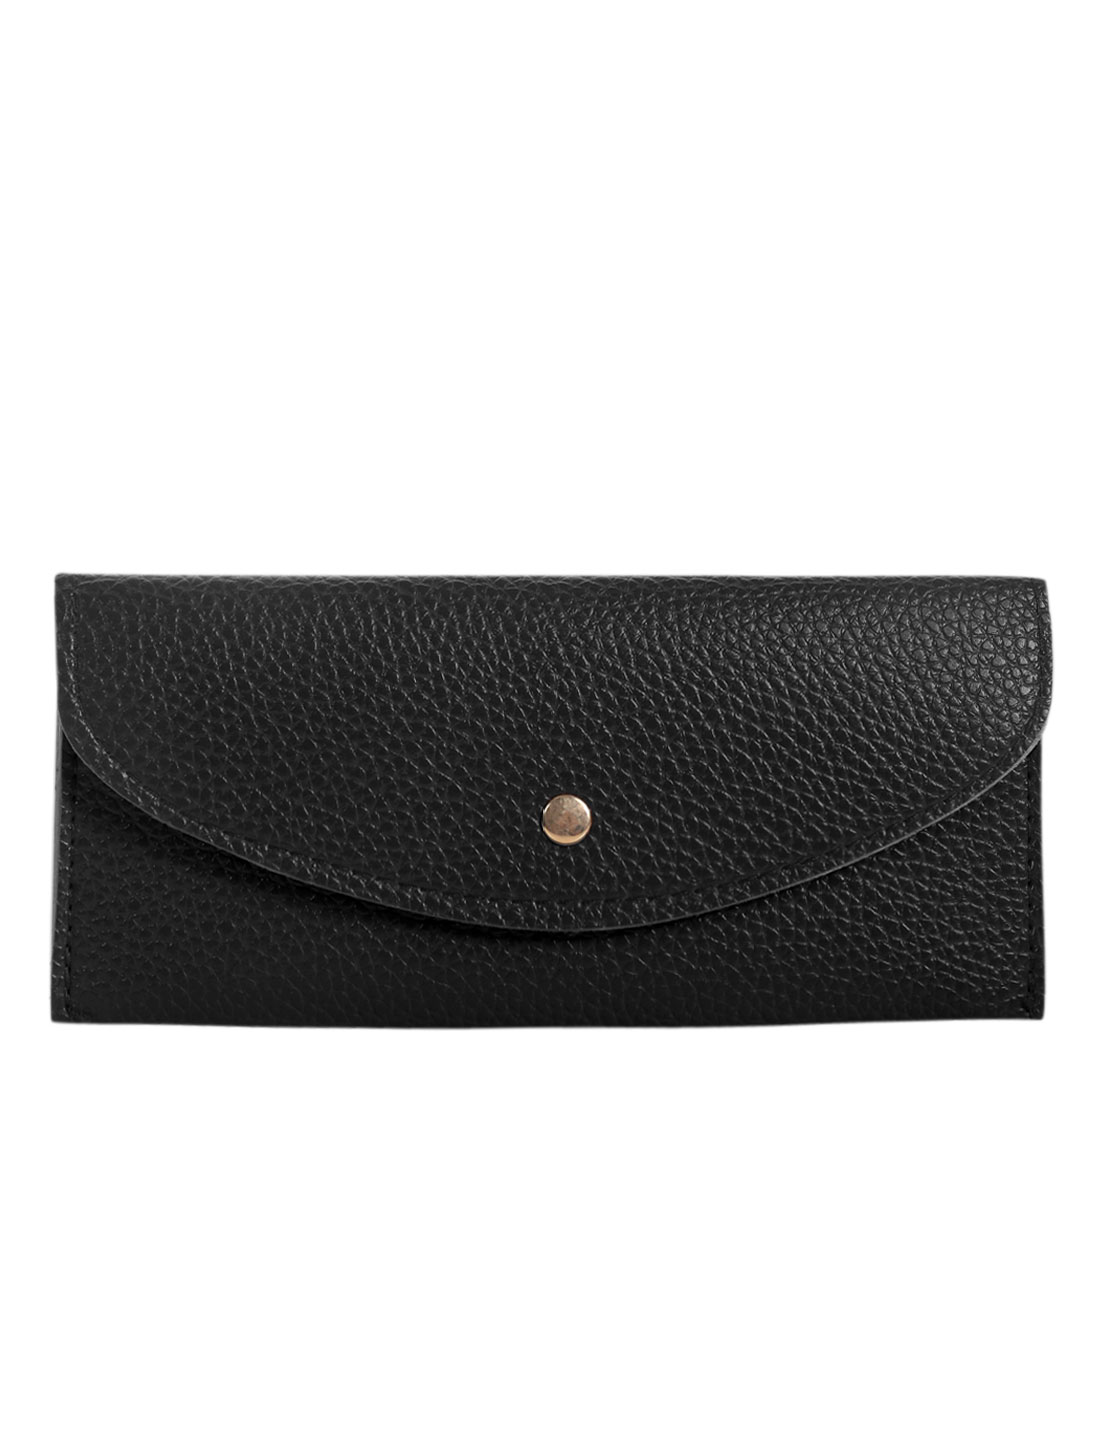 Unisex Rectangle Shape Slim Textured Wallet Black